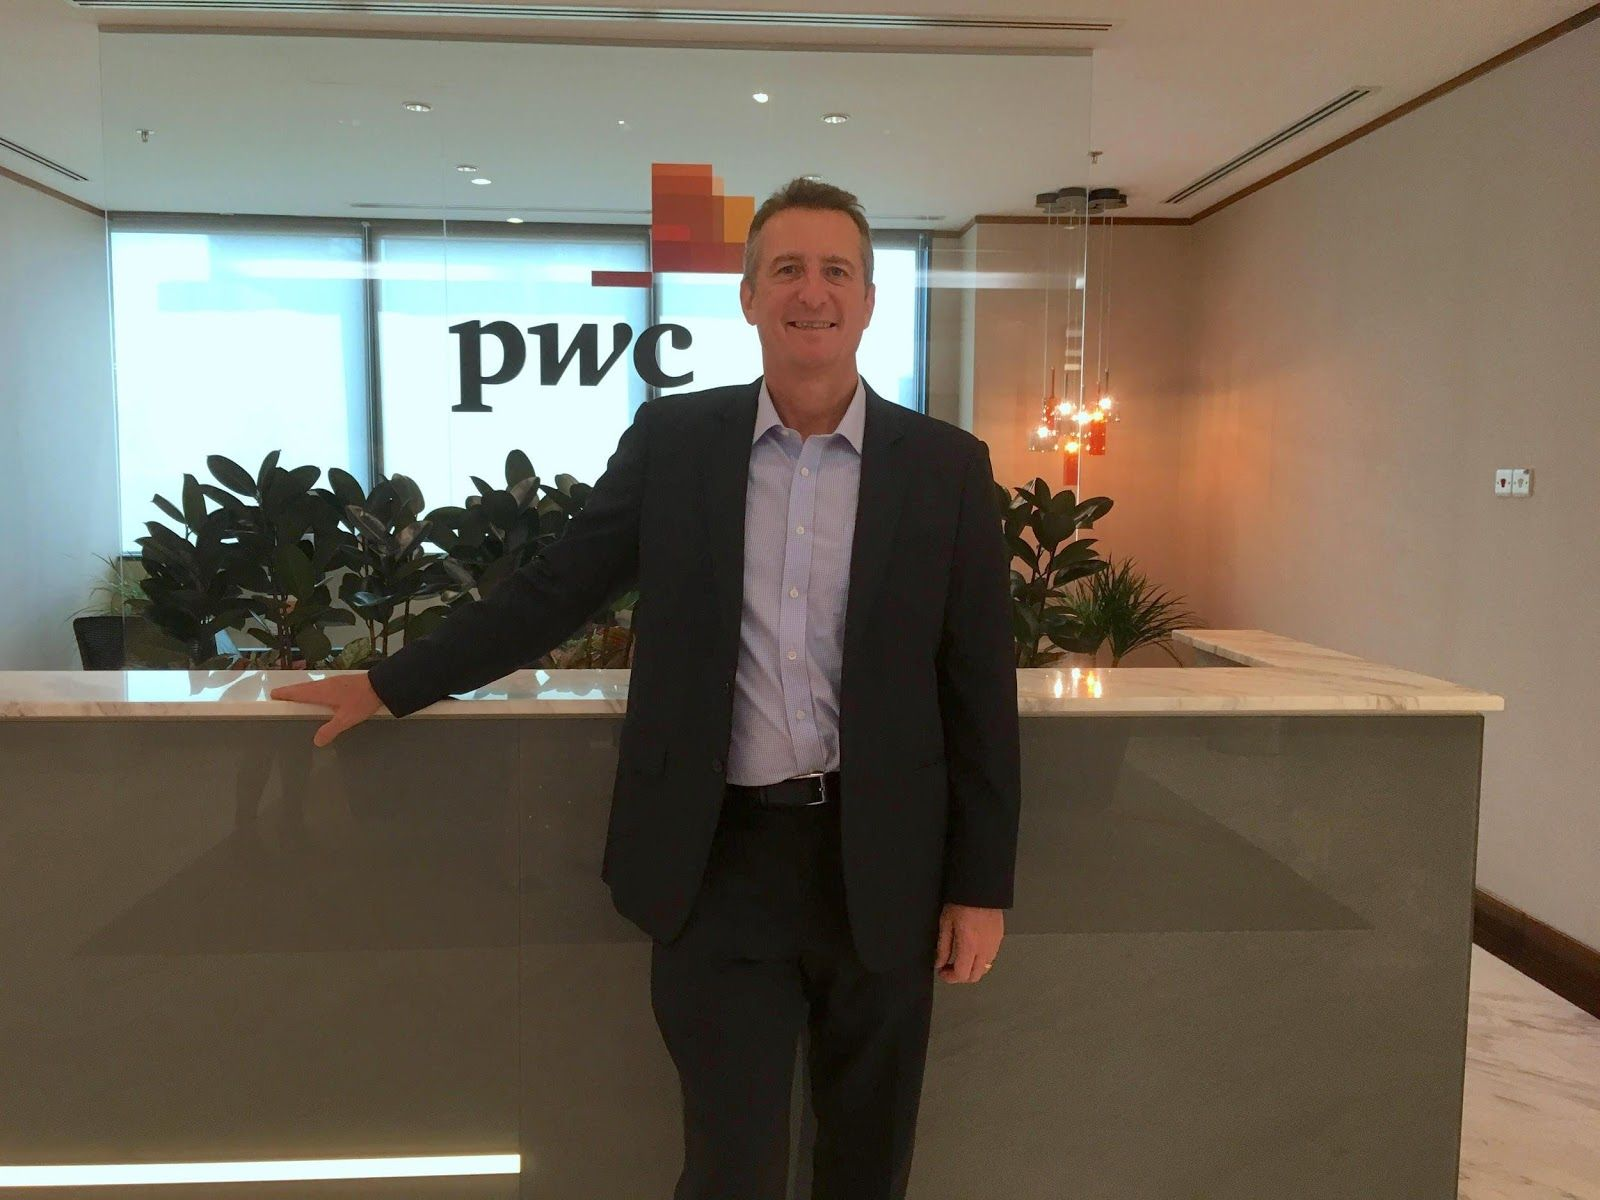 Greg Unsworth, digital business leader at PwC